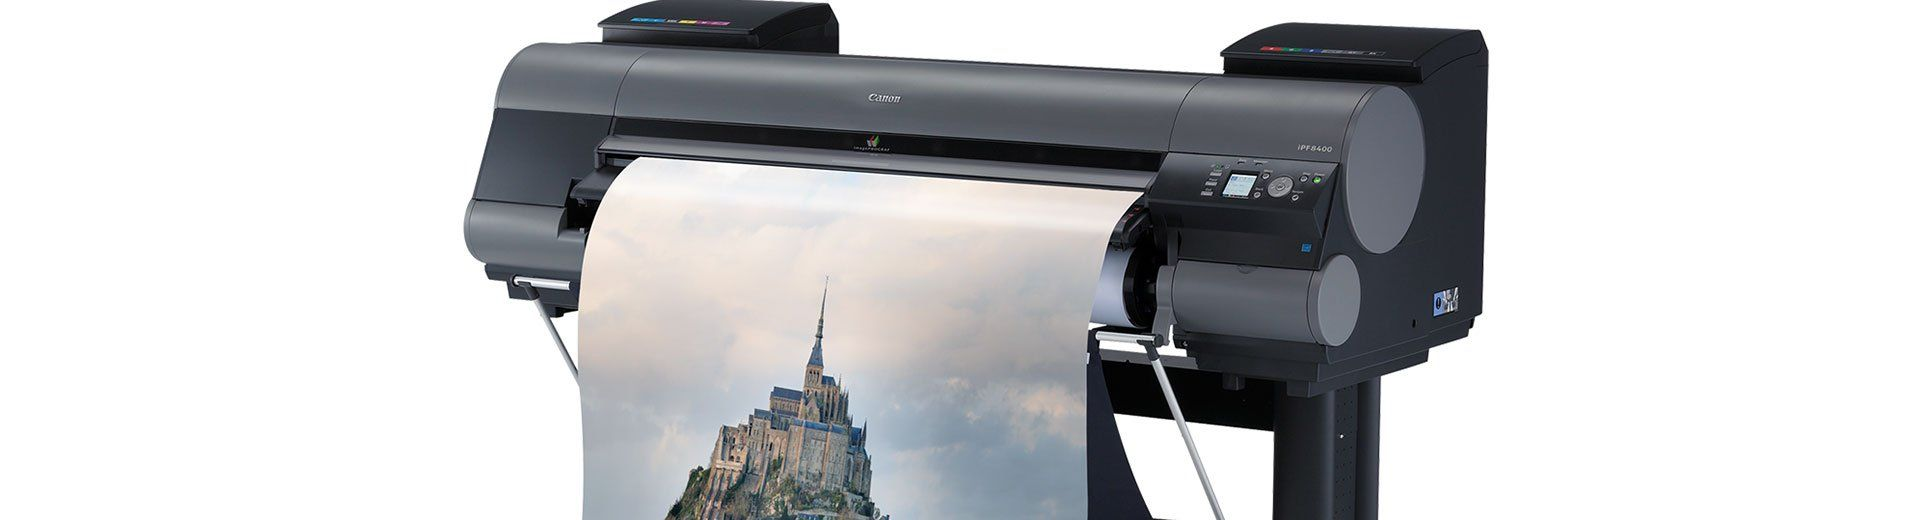 Large Format Photo Printer